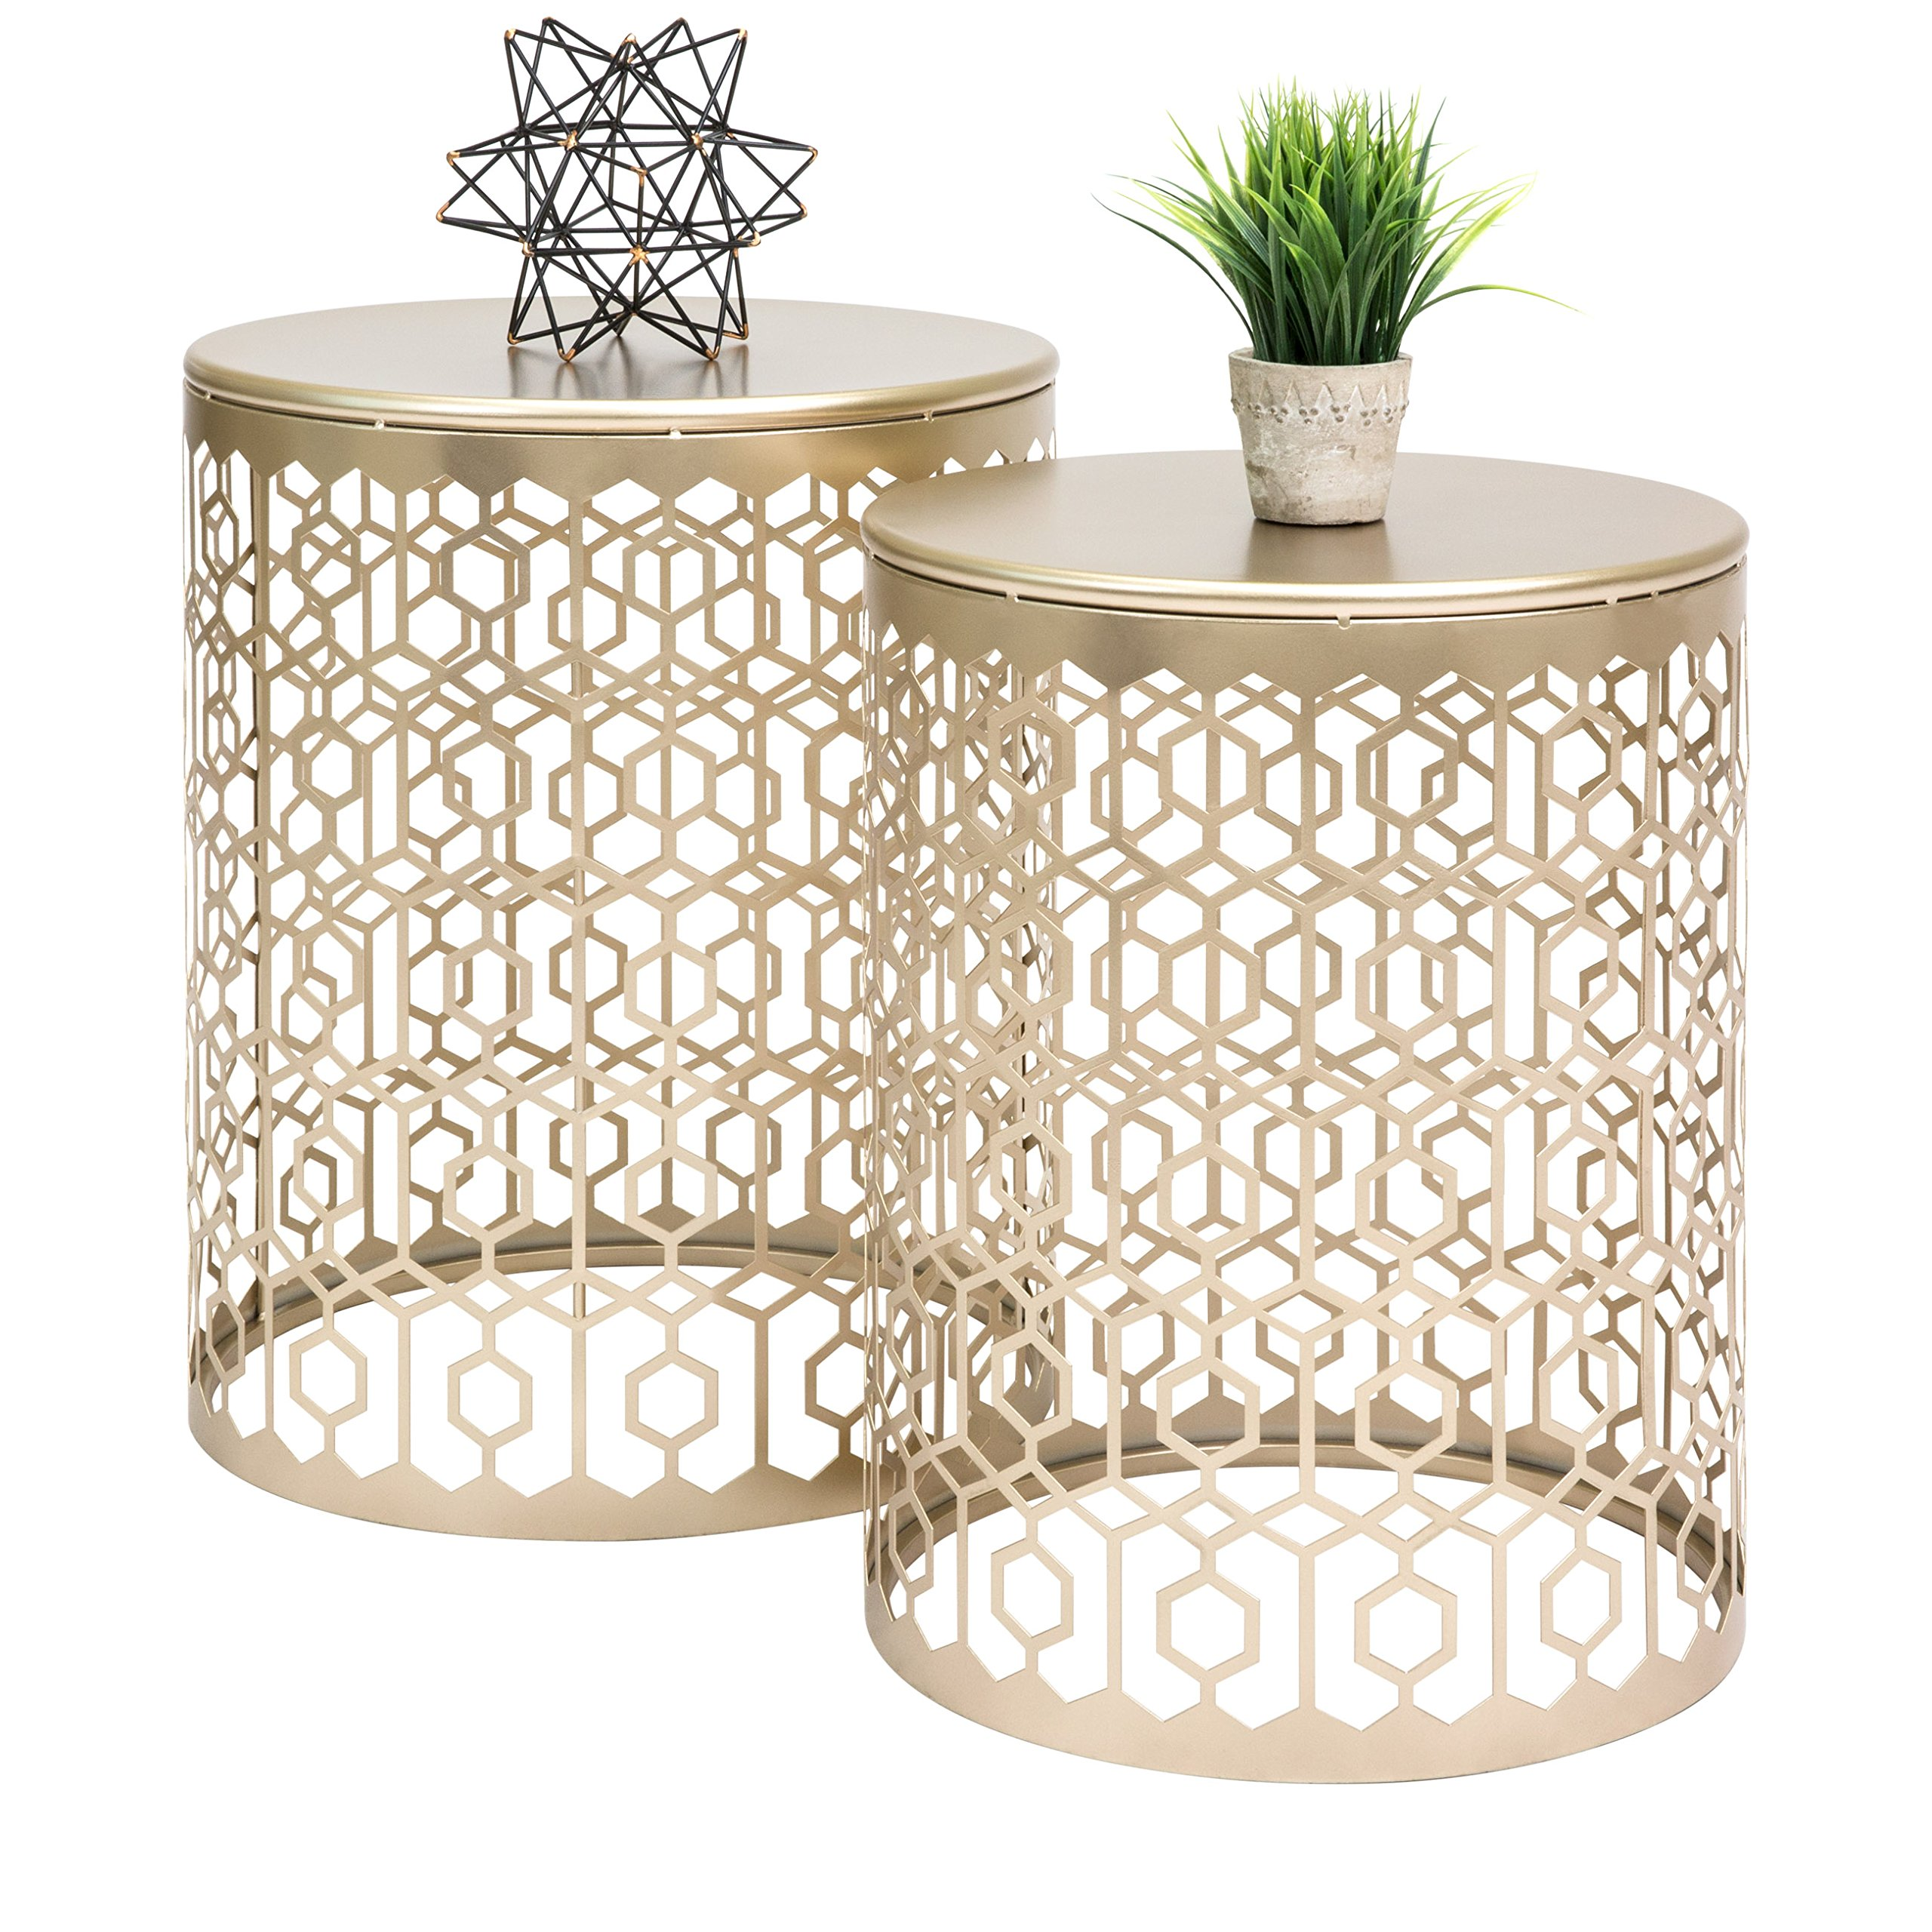 Best Choice Products Set of 2 Indoor Outdoor Decorative Nesting Round Side End Accent Coffee Table Nightstands - Gold